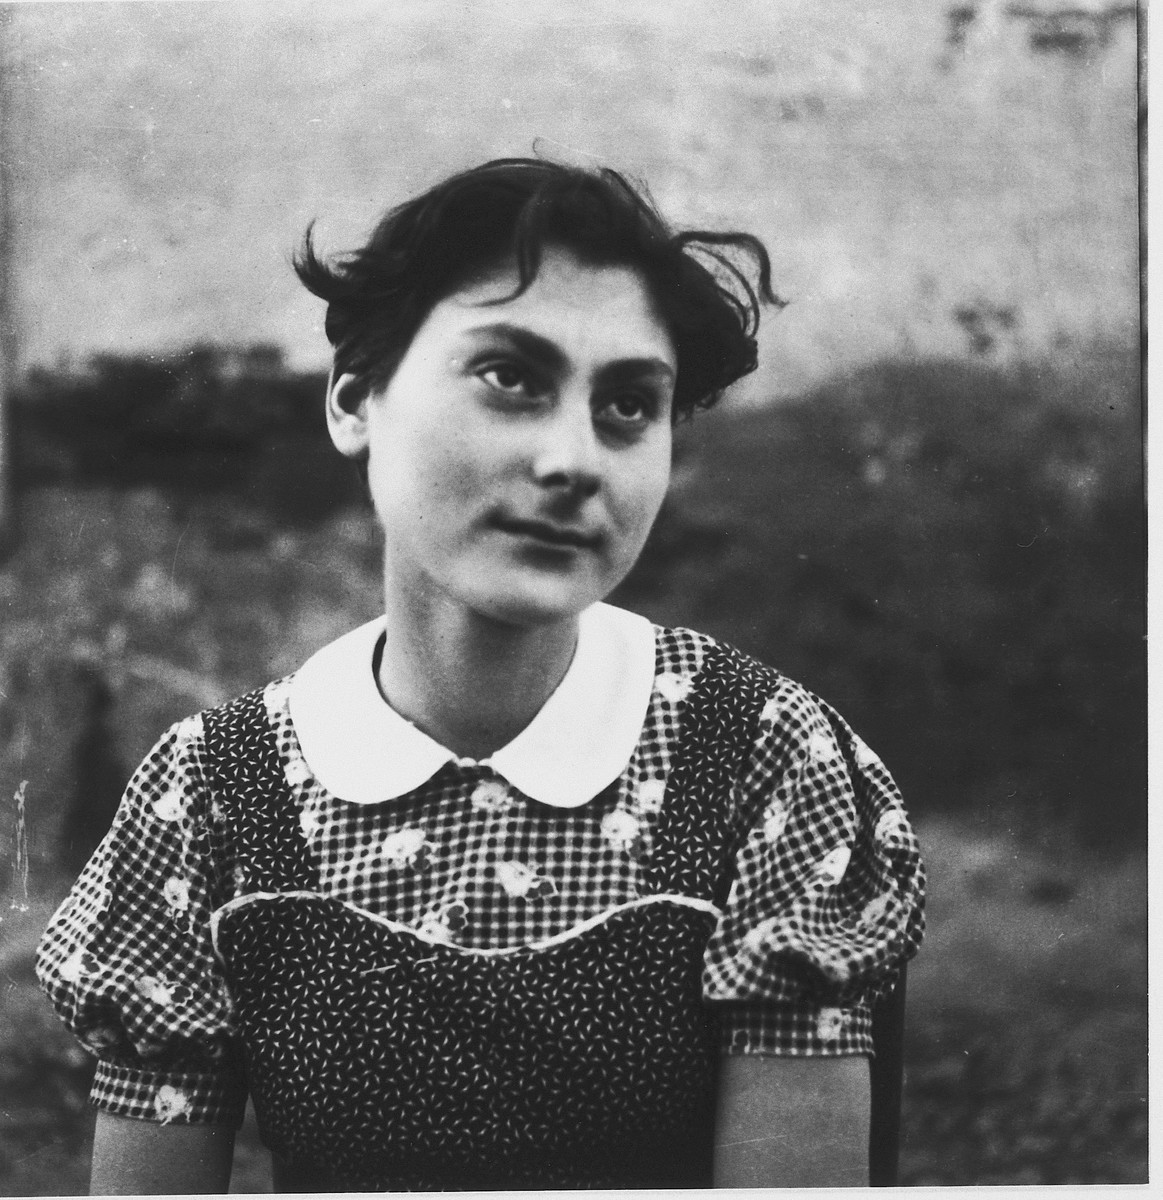 Portrait of Ruth Klonover (later Tamir) in the la Hille children's home.